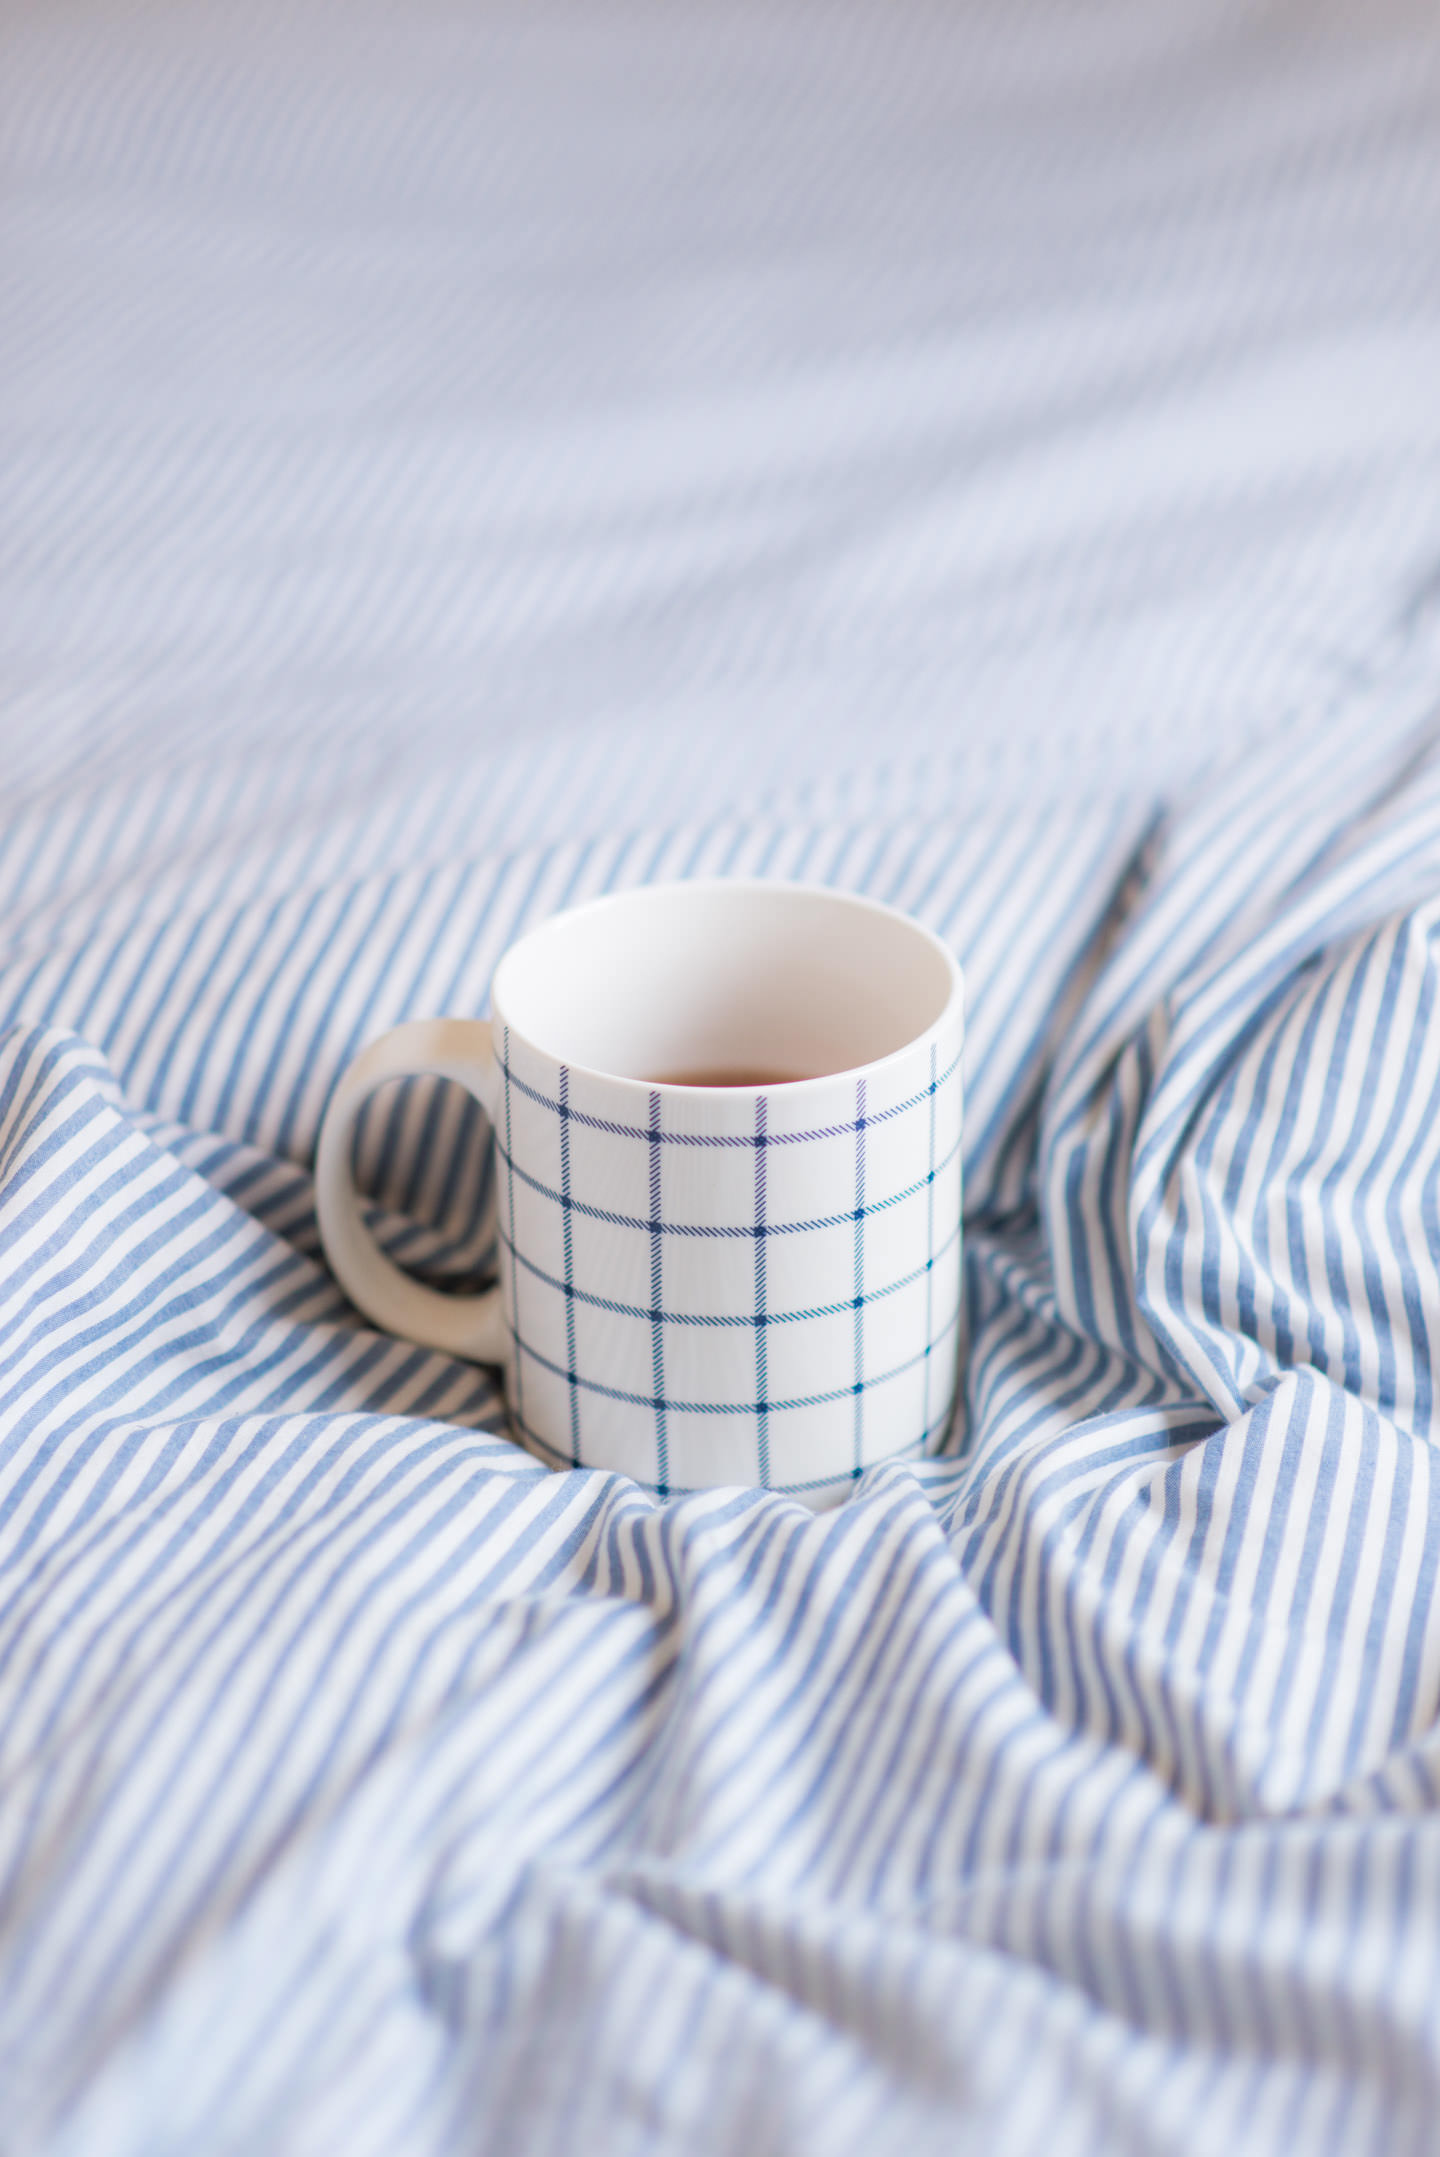 Blog-mode-And-The-City-Lifestyle-One-picture-one-Hour-10-mug-geant-carreaux-monoprix